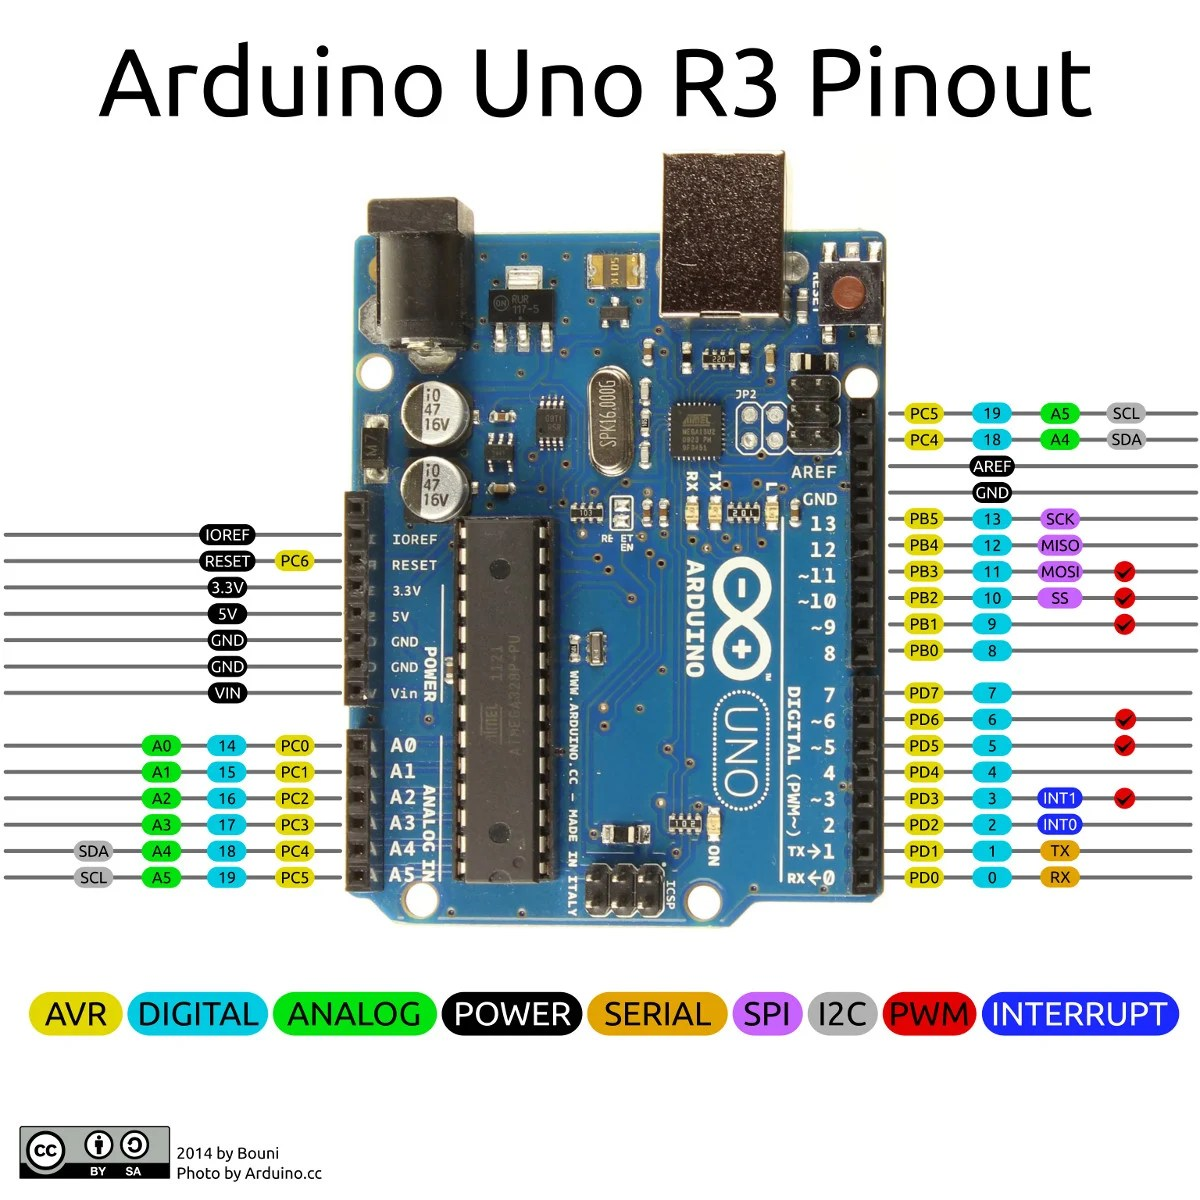 hight resolution of arduino uno r3 pinout image courtesy of github